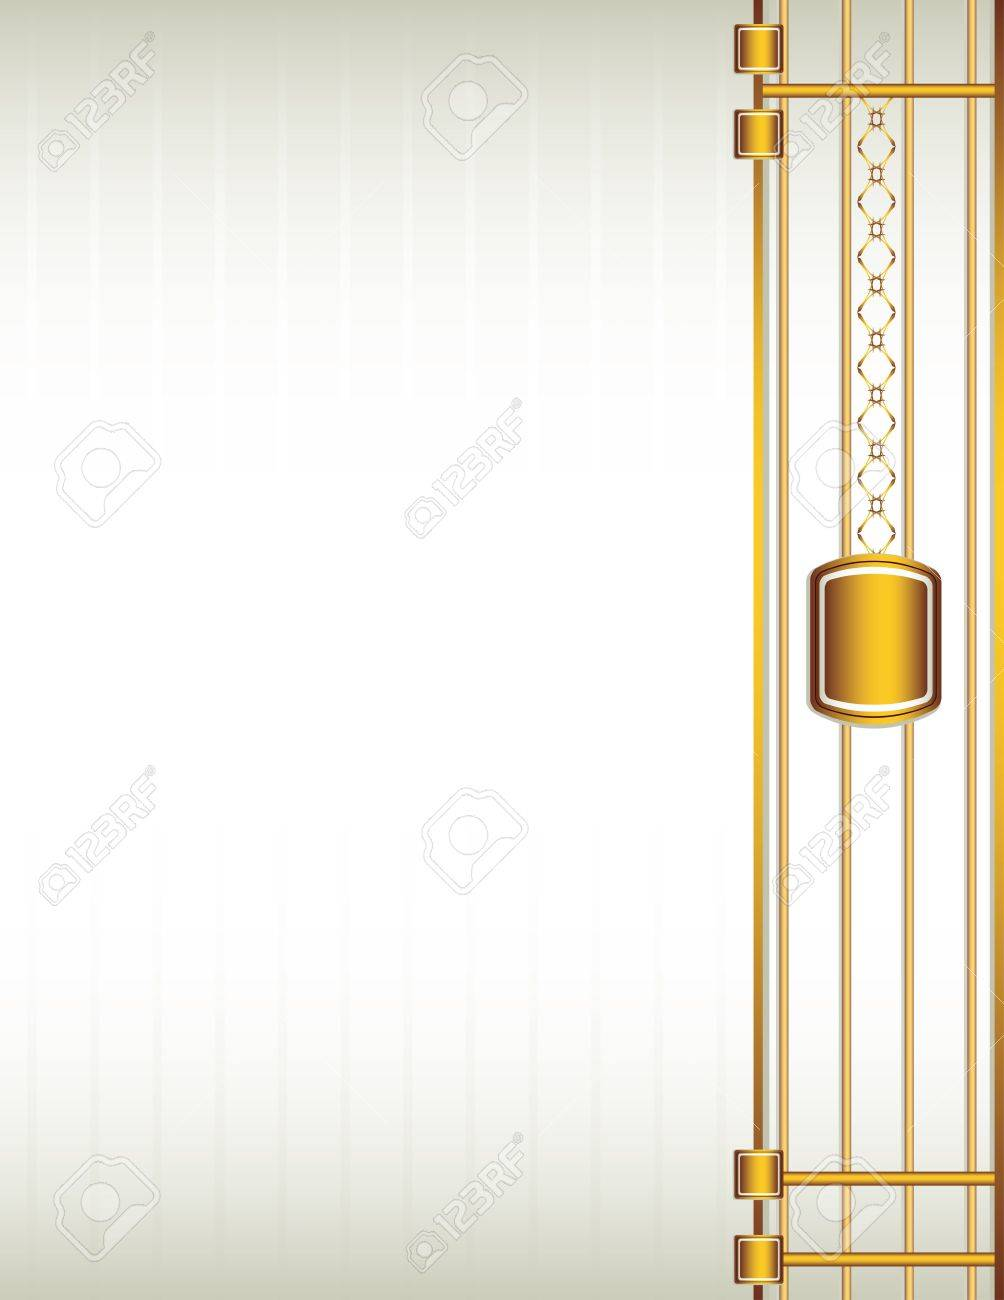 Cream background with a gold design including chain-like elements Stock Vector - 7315150